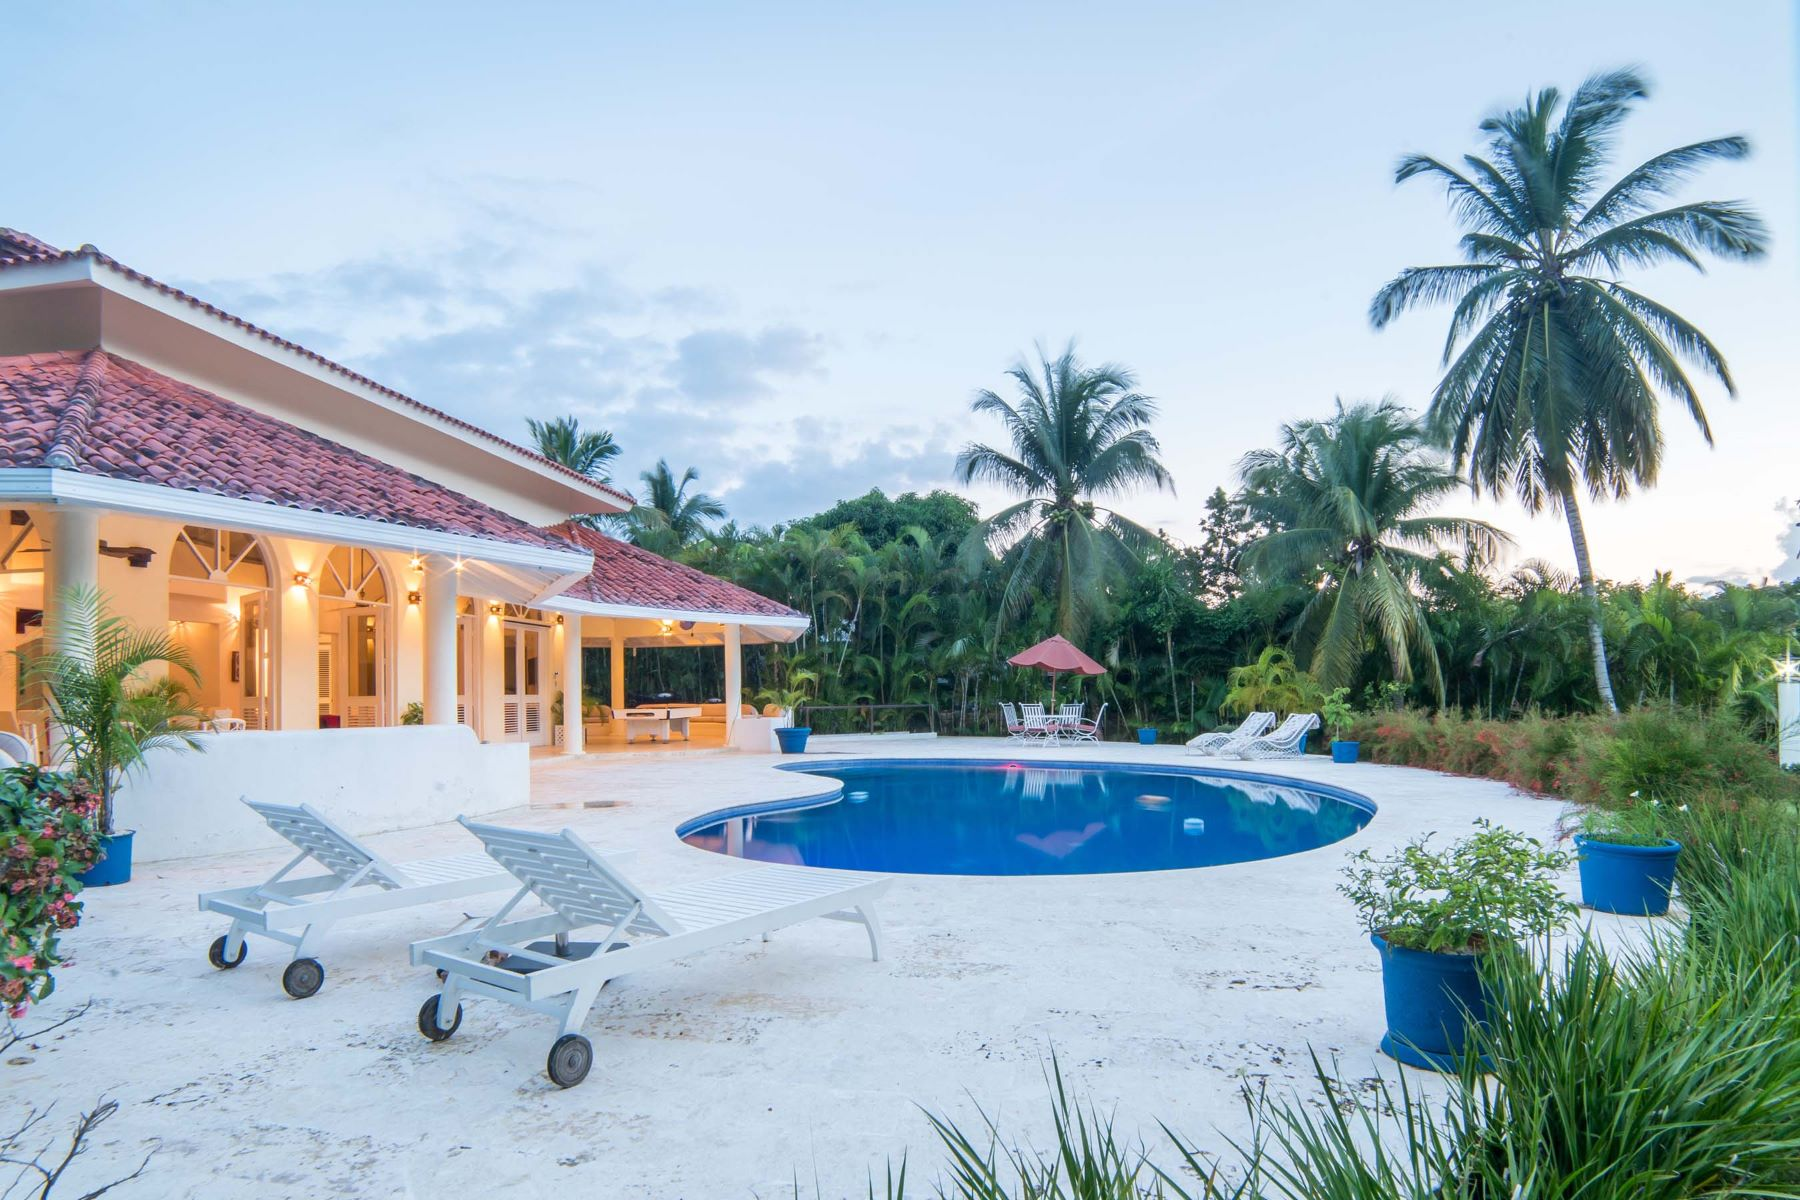 Single Family Home for Sale at The Largest and Least Expensive Turn-Key home in the Neighborhood Casa De Campo, La Romana Dominican Republic